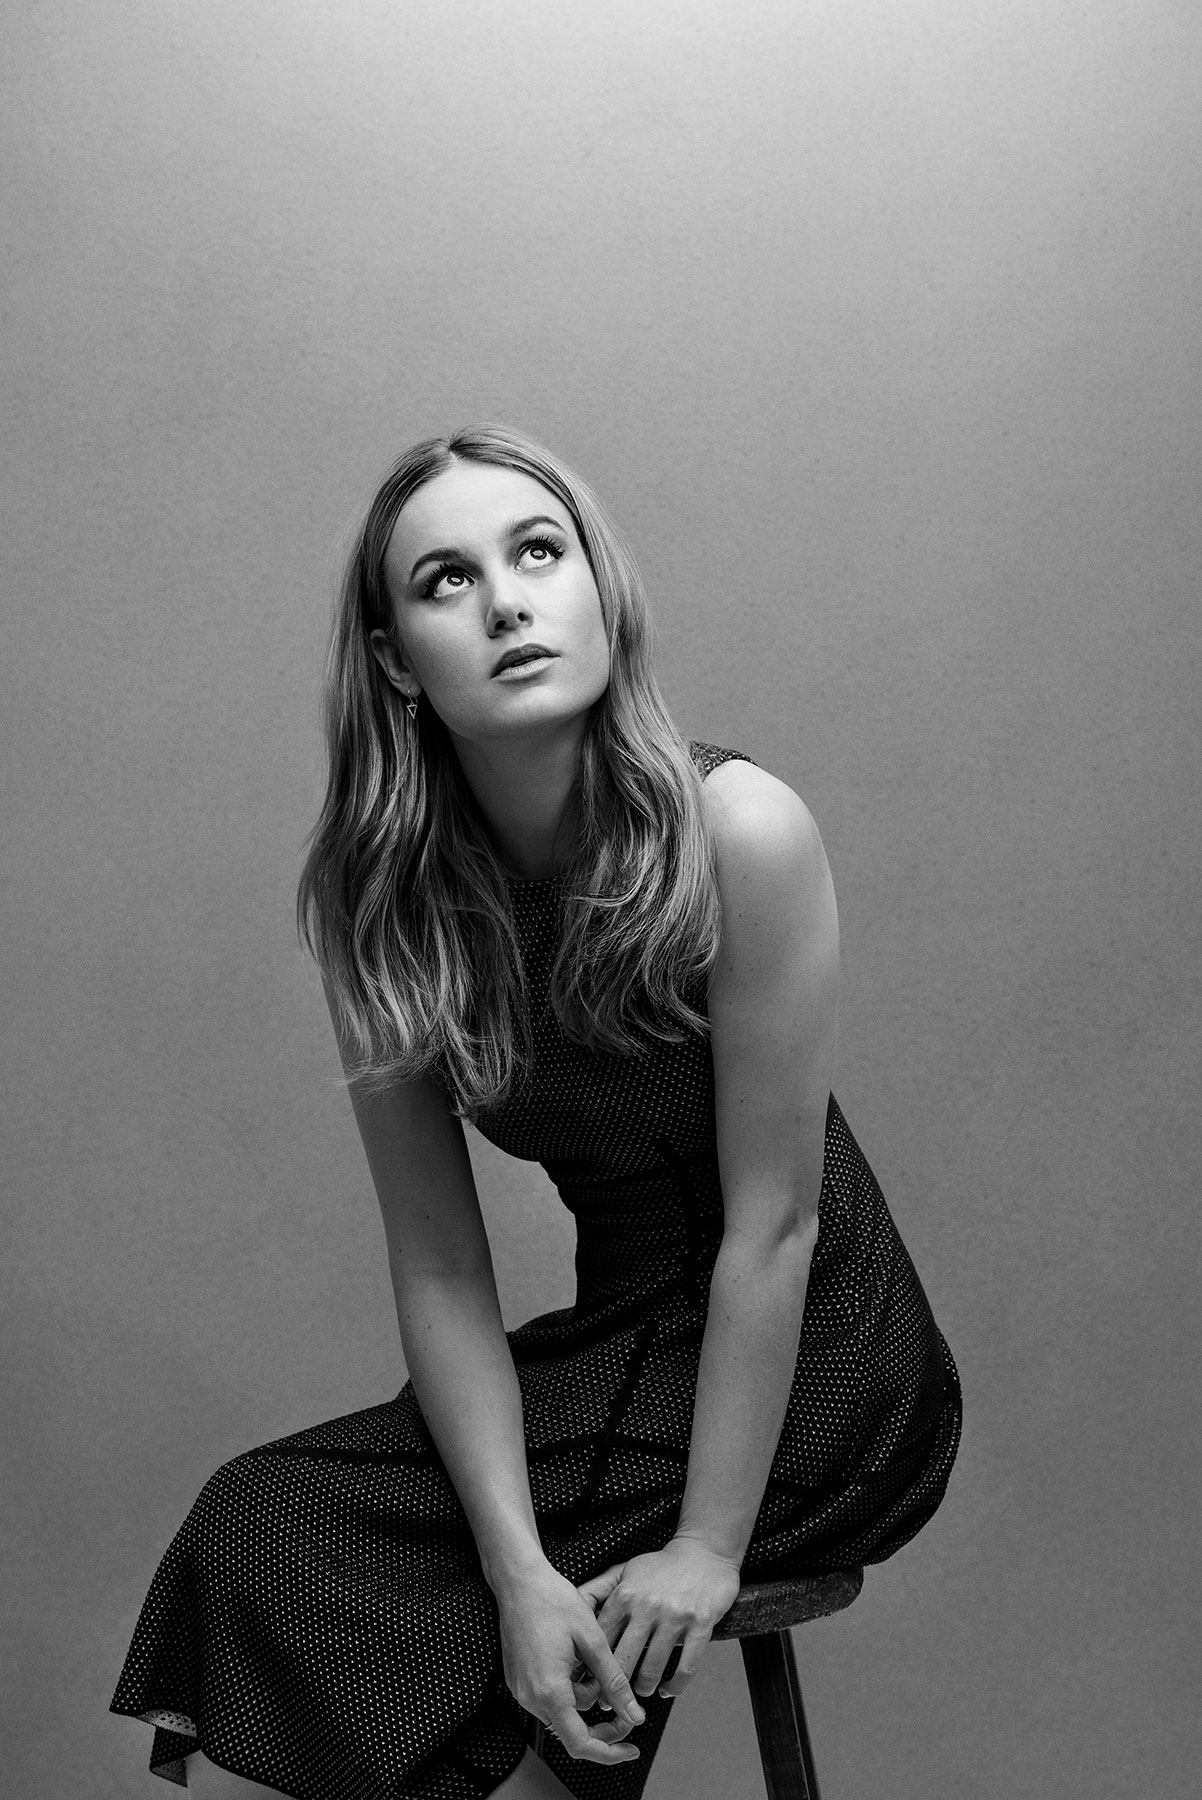 Actress and director Brie Larson